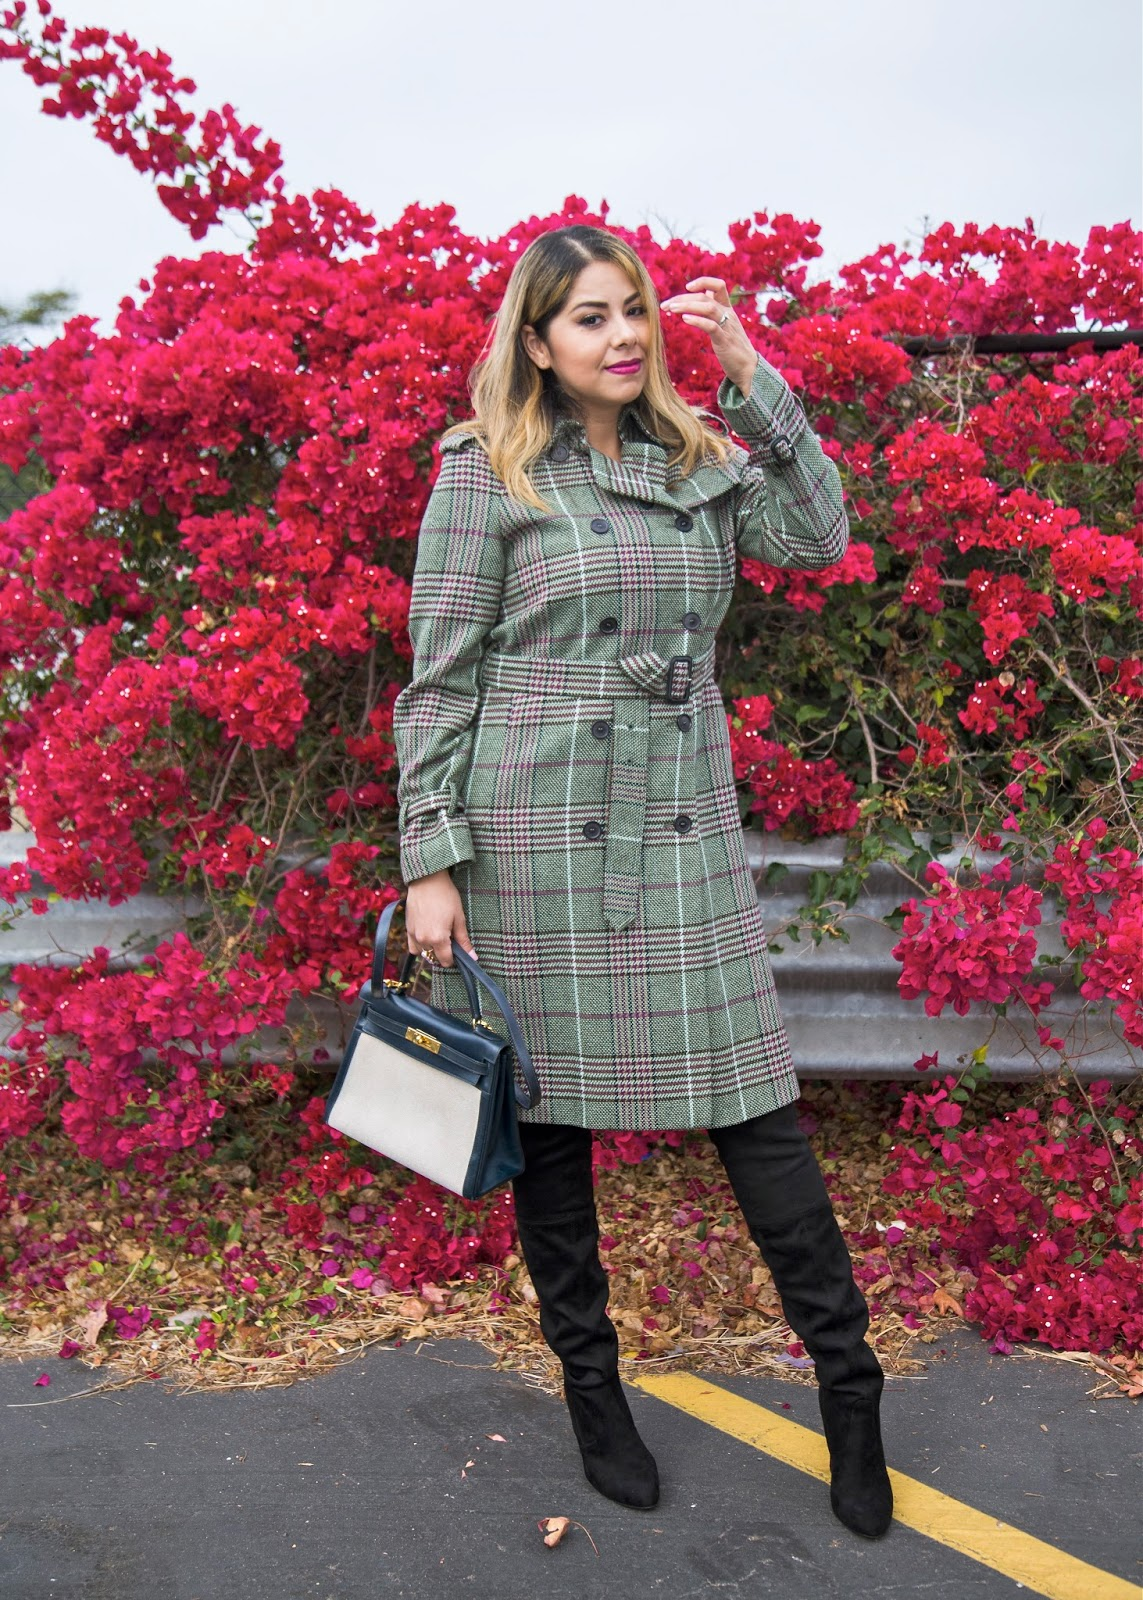 burberry trench coat, trench coat outfit idea, burberry trench coat vintage, latina fashion blogger